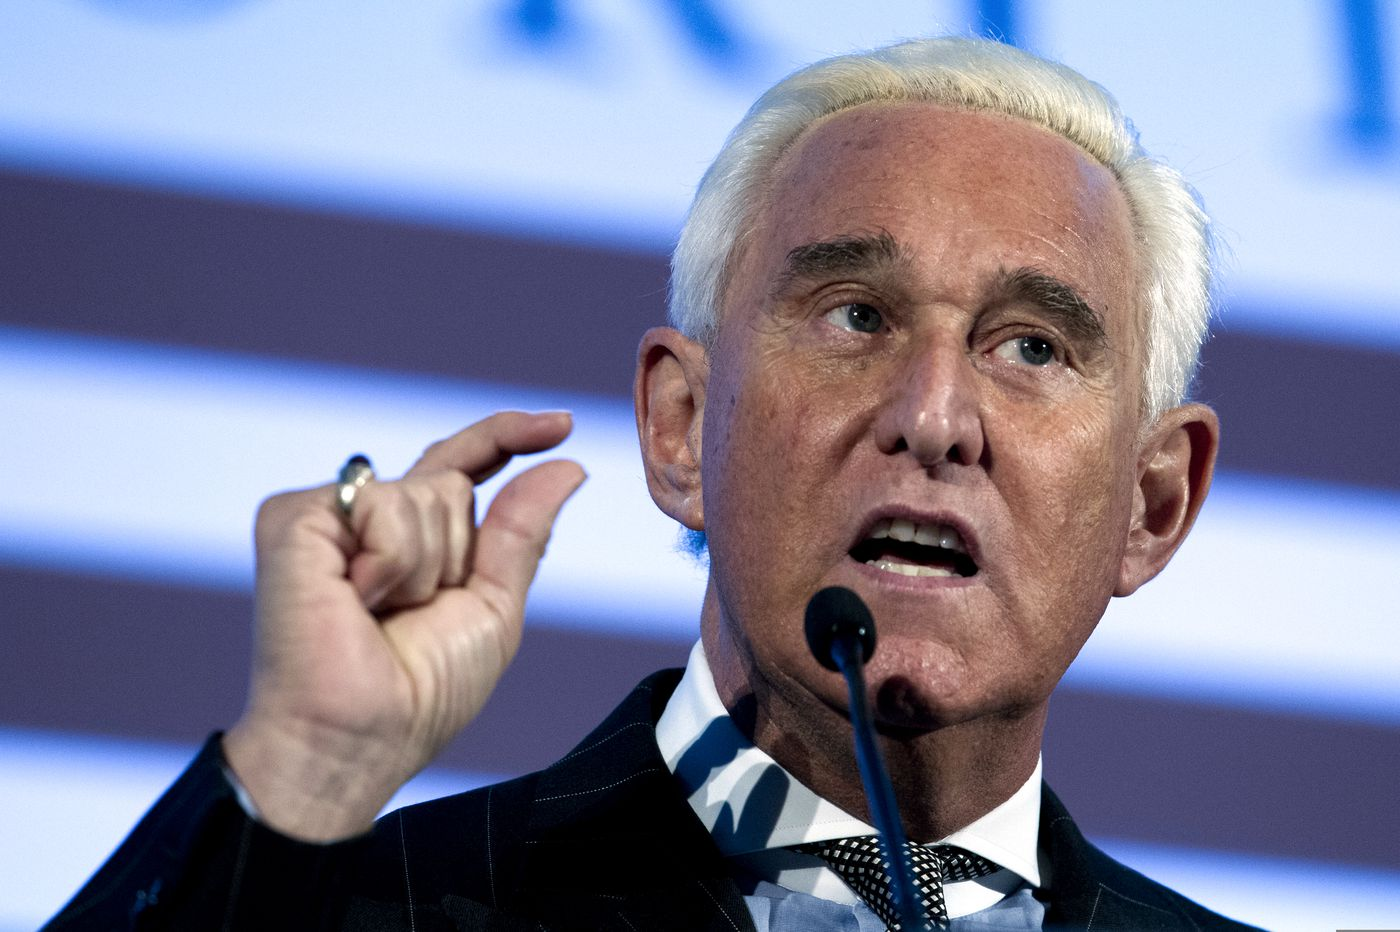 Trump confidant Roger Stone is arrested, says he's falsely accused